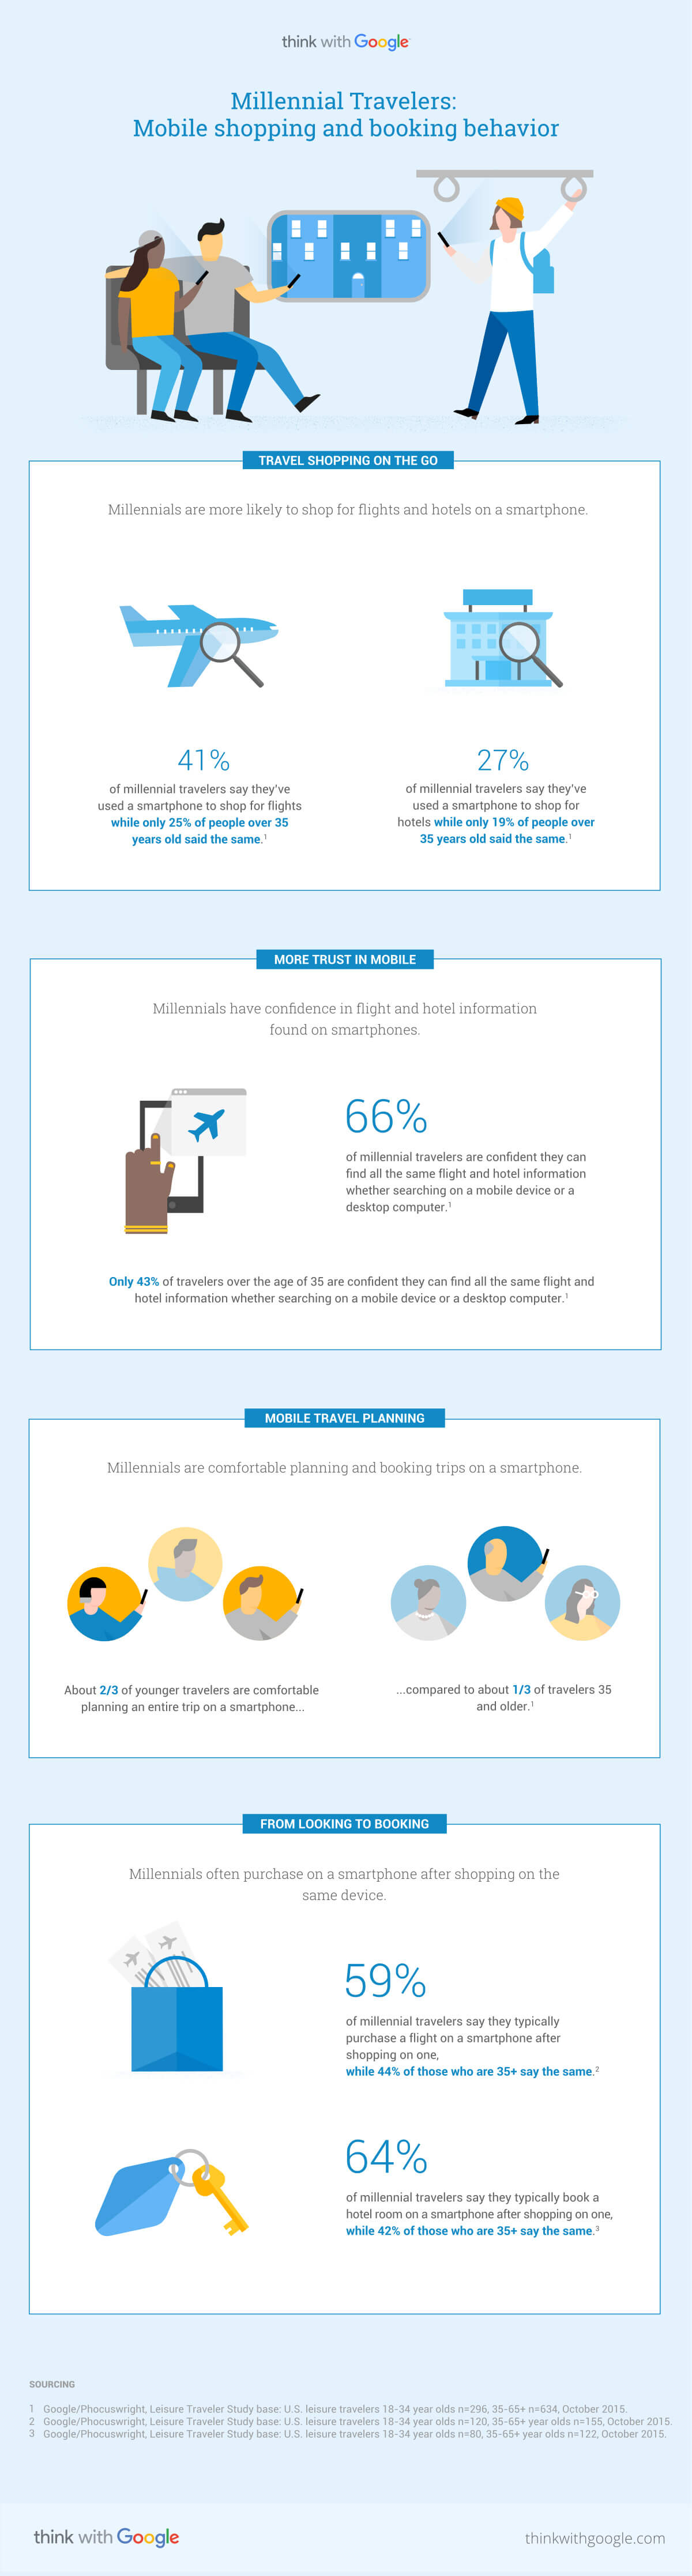 millennial-travelers-mobile-shopping-booking-behavior